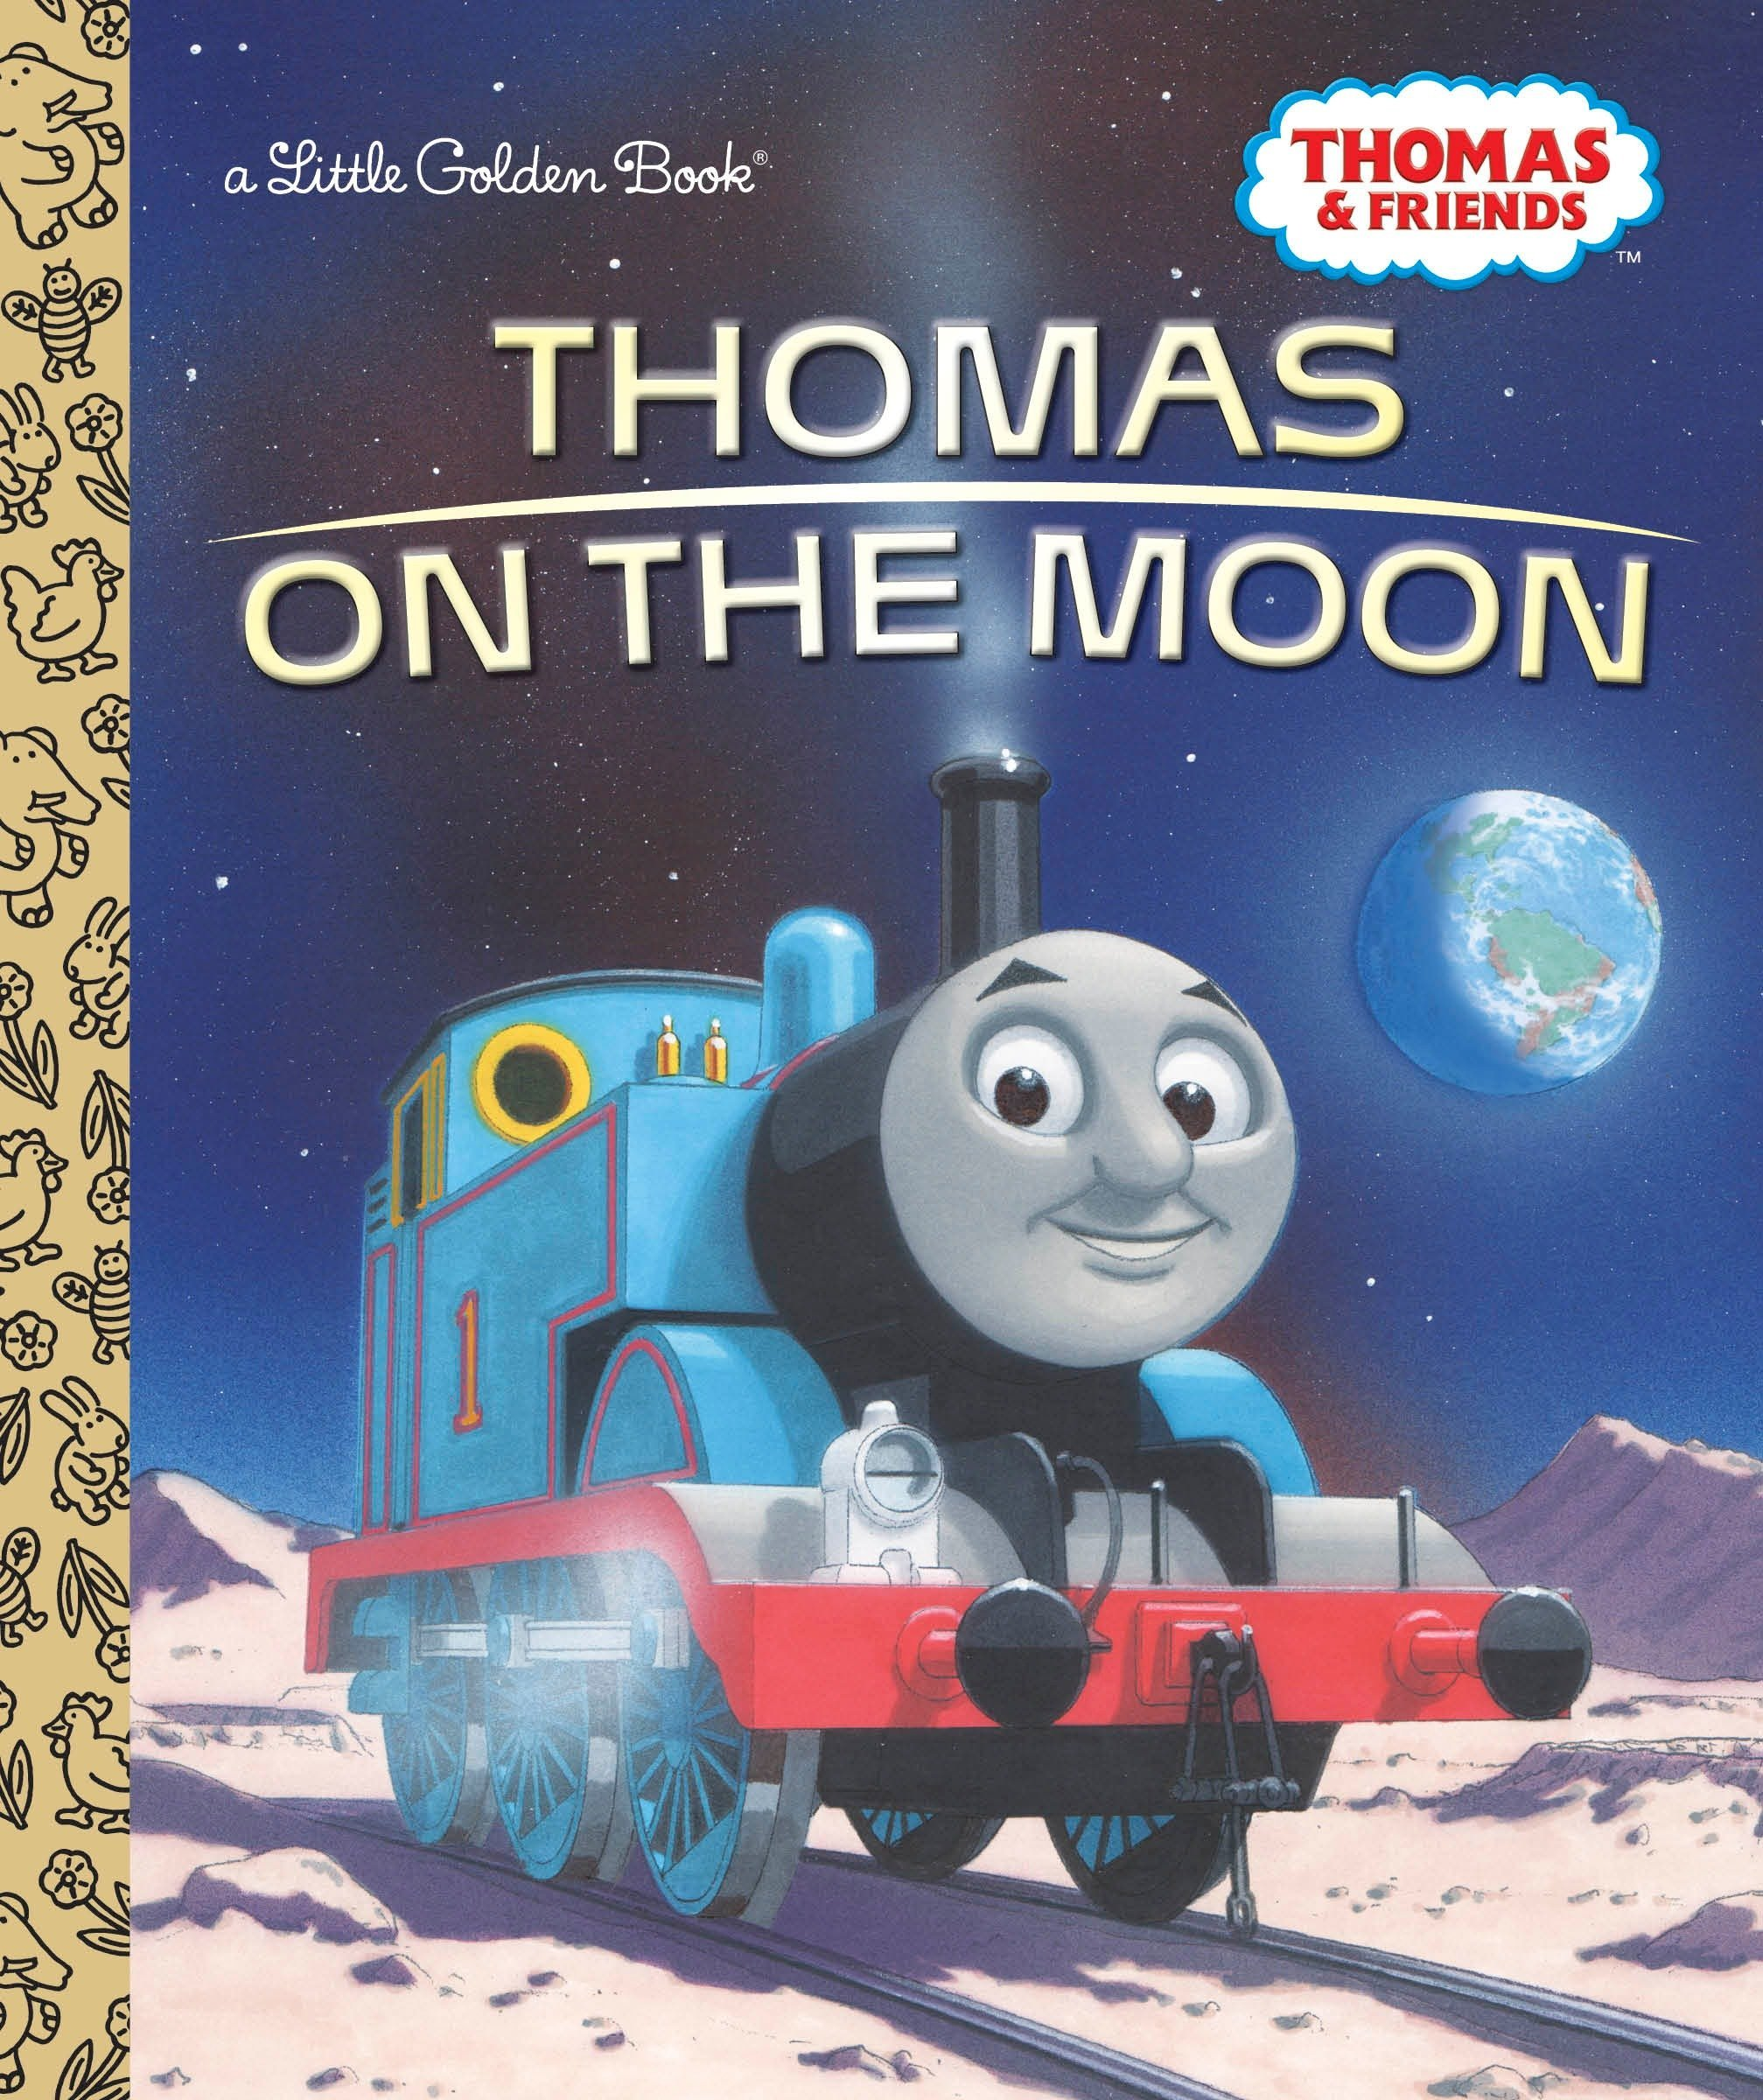 Thomas on the Moon (Thomas & Friends) (Little Golden Book) Hardcover – January 3, 2017 Golden Books 0399558535 Media Tie-In Social Themes - Friendship